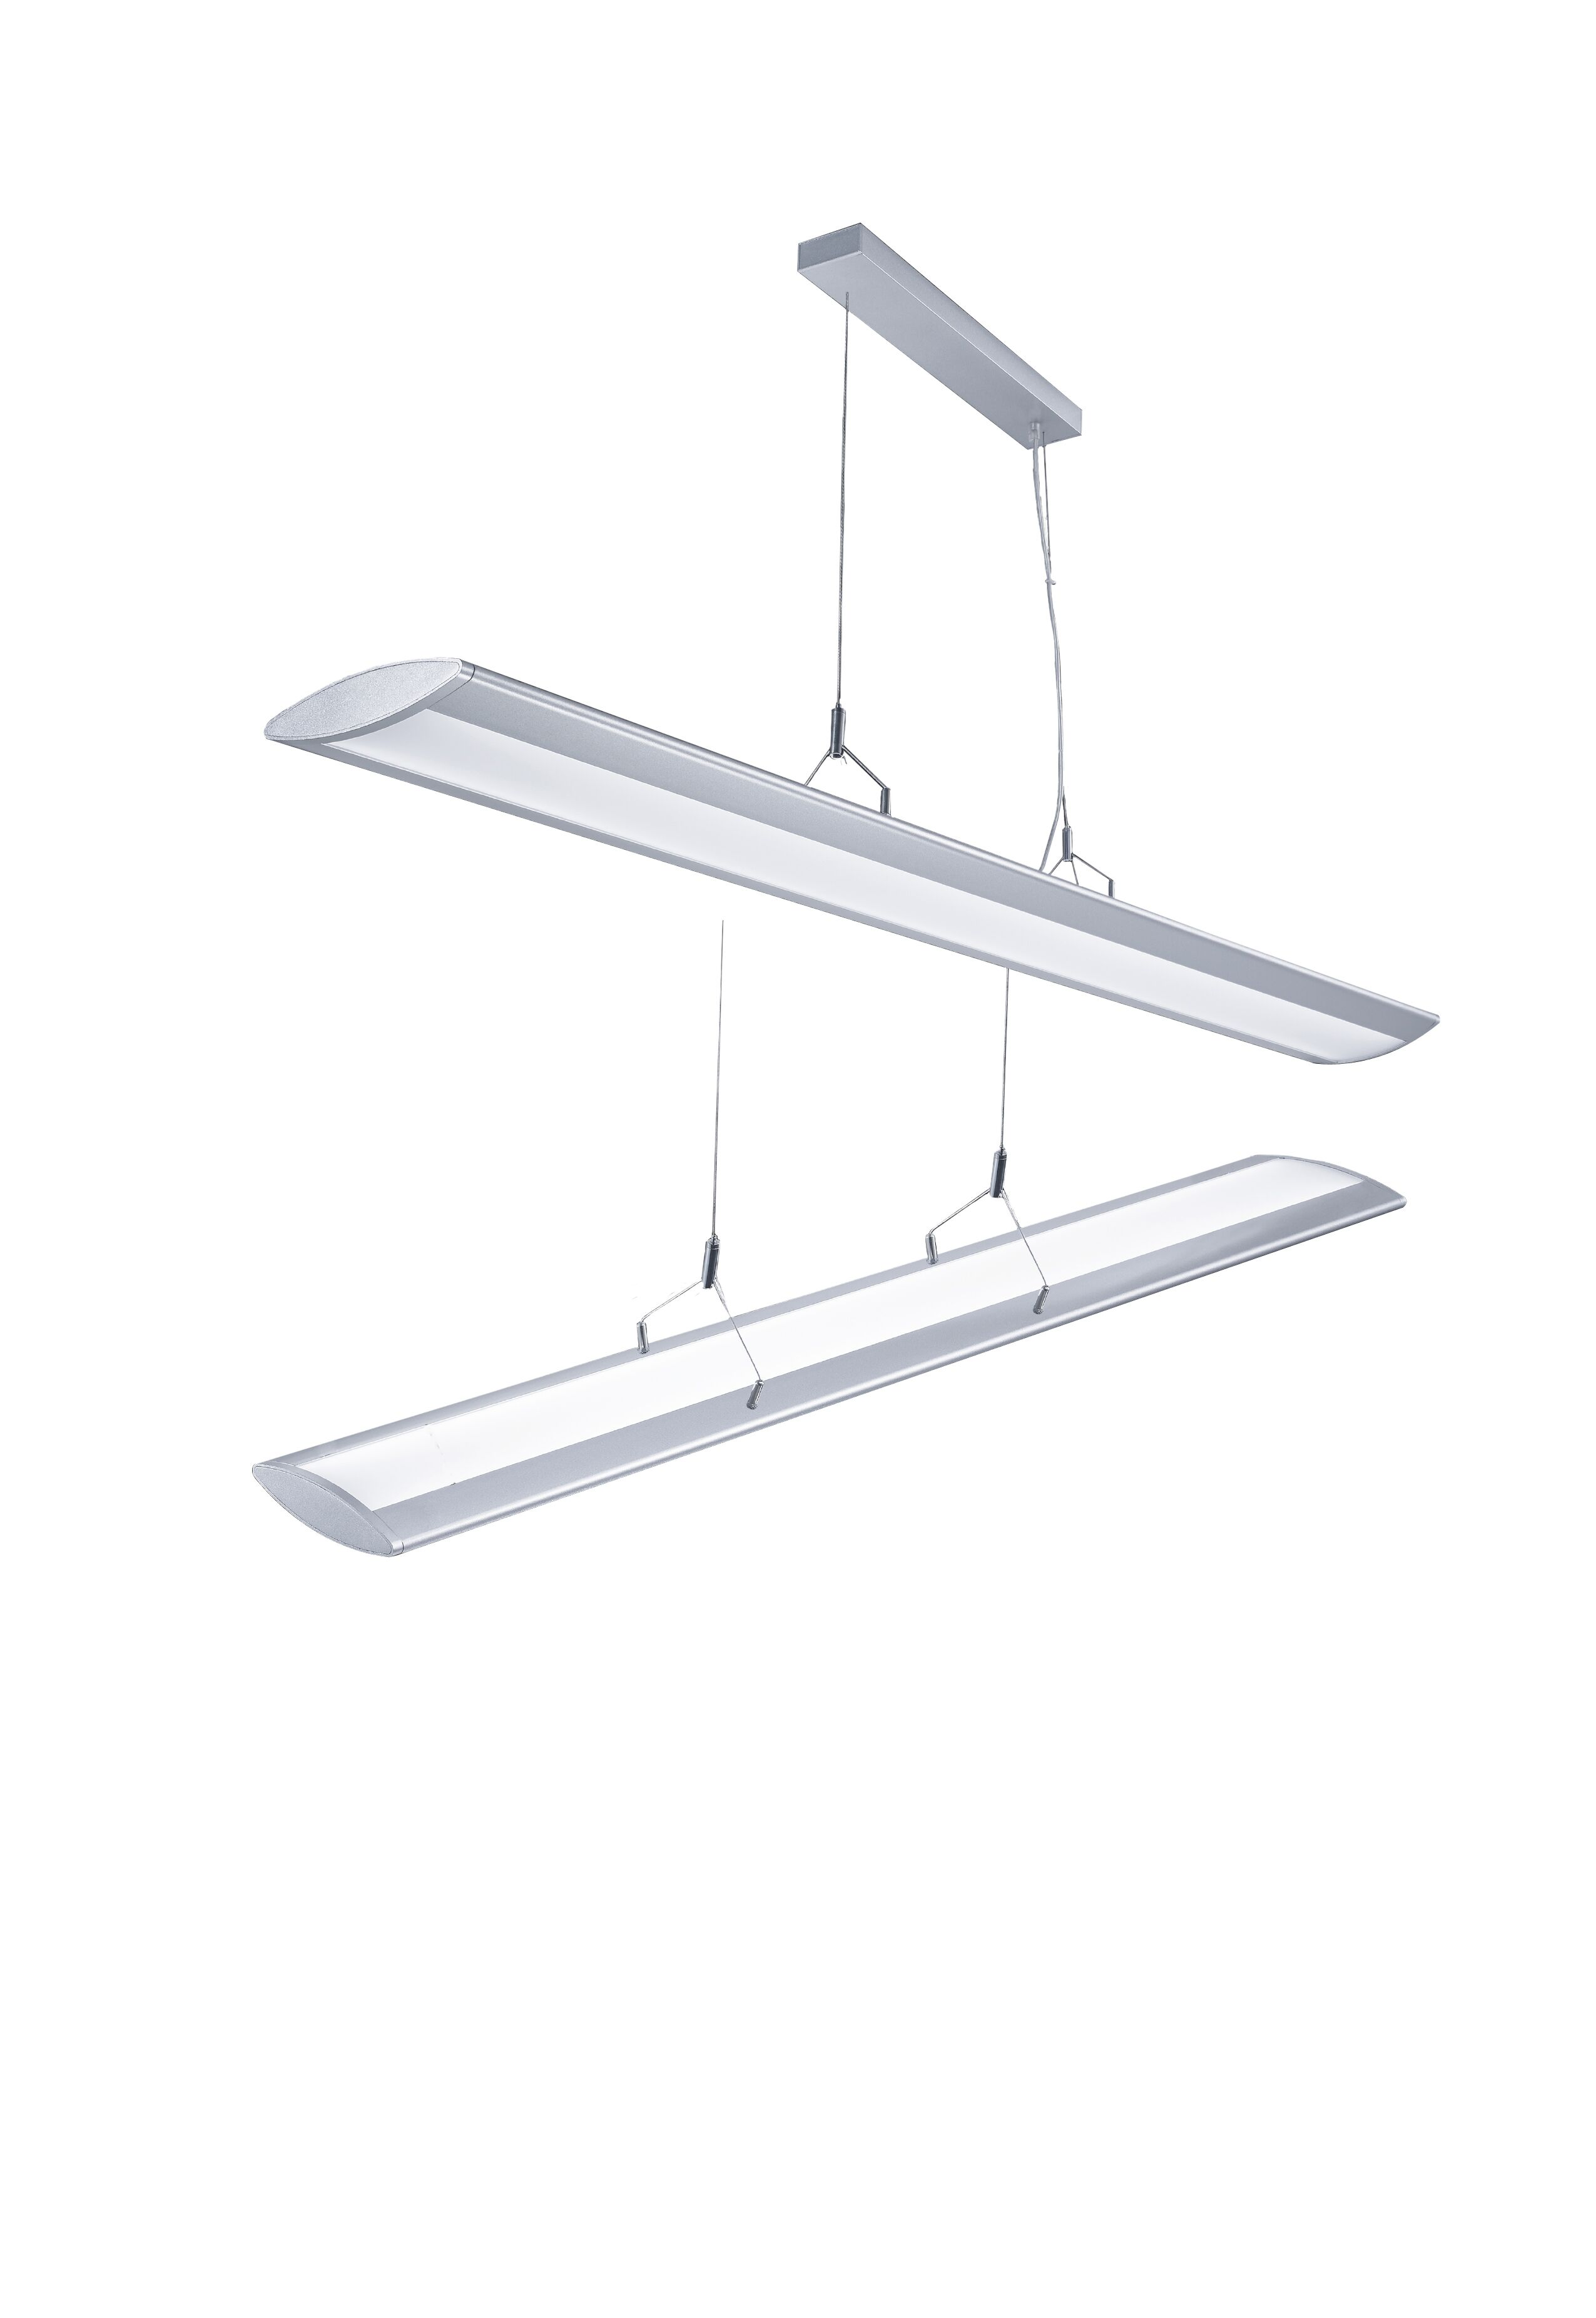 Led Suspension Linear Lamp Aluminium Lighting Fixture Up And Down Light Indoor Chandelier For Office